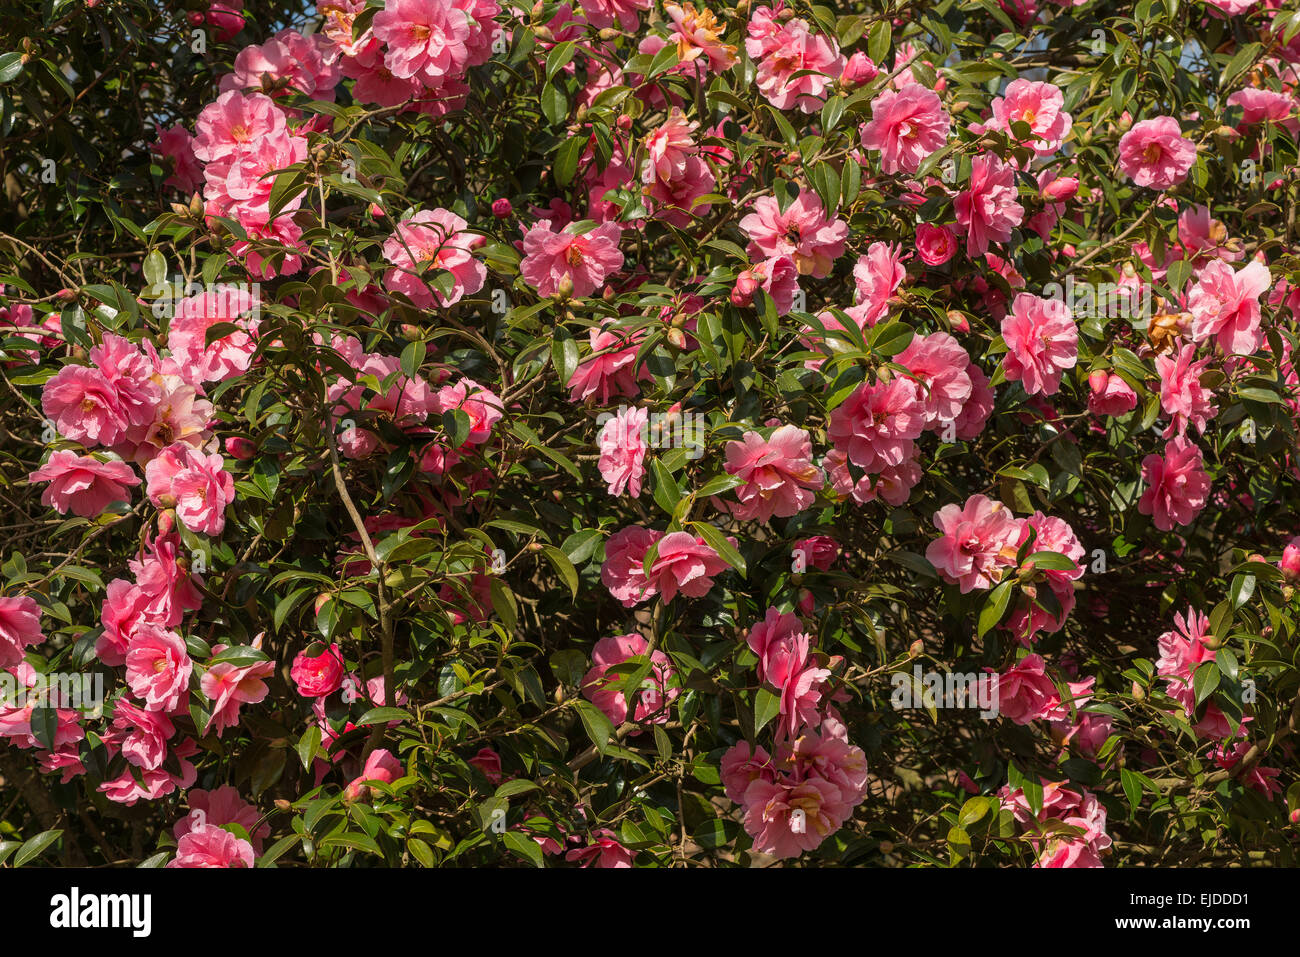 Lush deep pink flowers of camellia inspiration an evergreen shrub lush deep pink flowers of camellia inspiration an evergreen shrub mightylinksfo